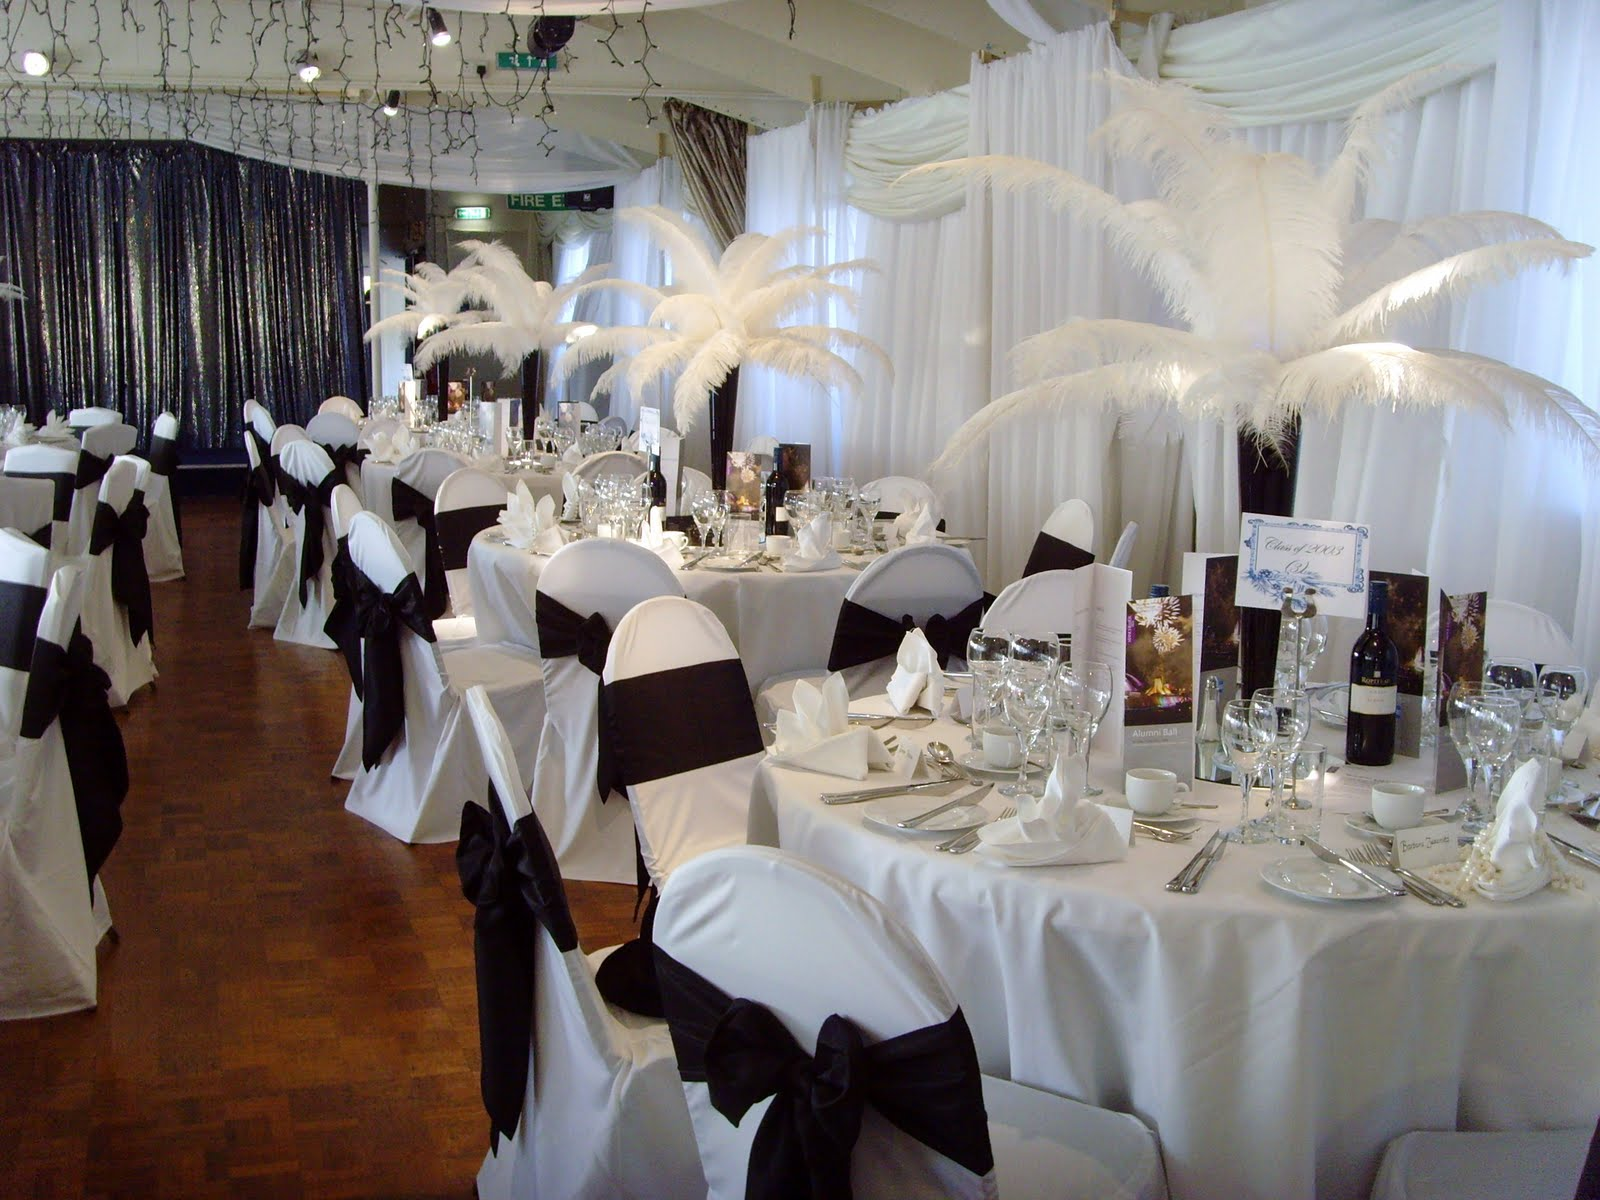 The best wedding decorations wedding venues decorations guide for Wedding decoration images